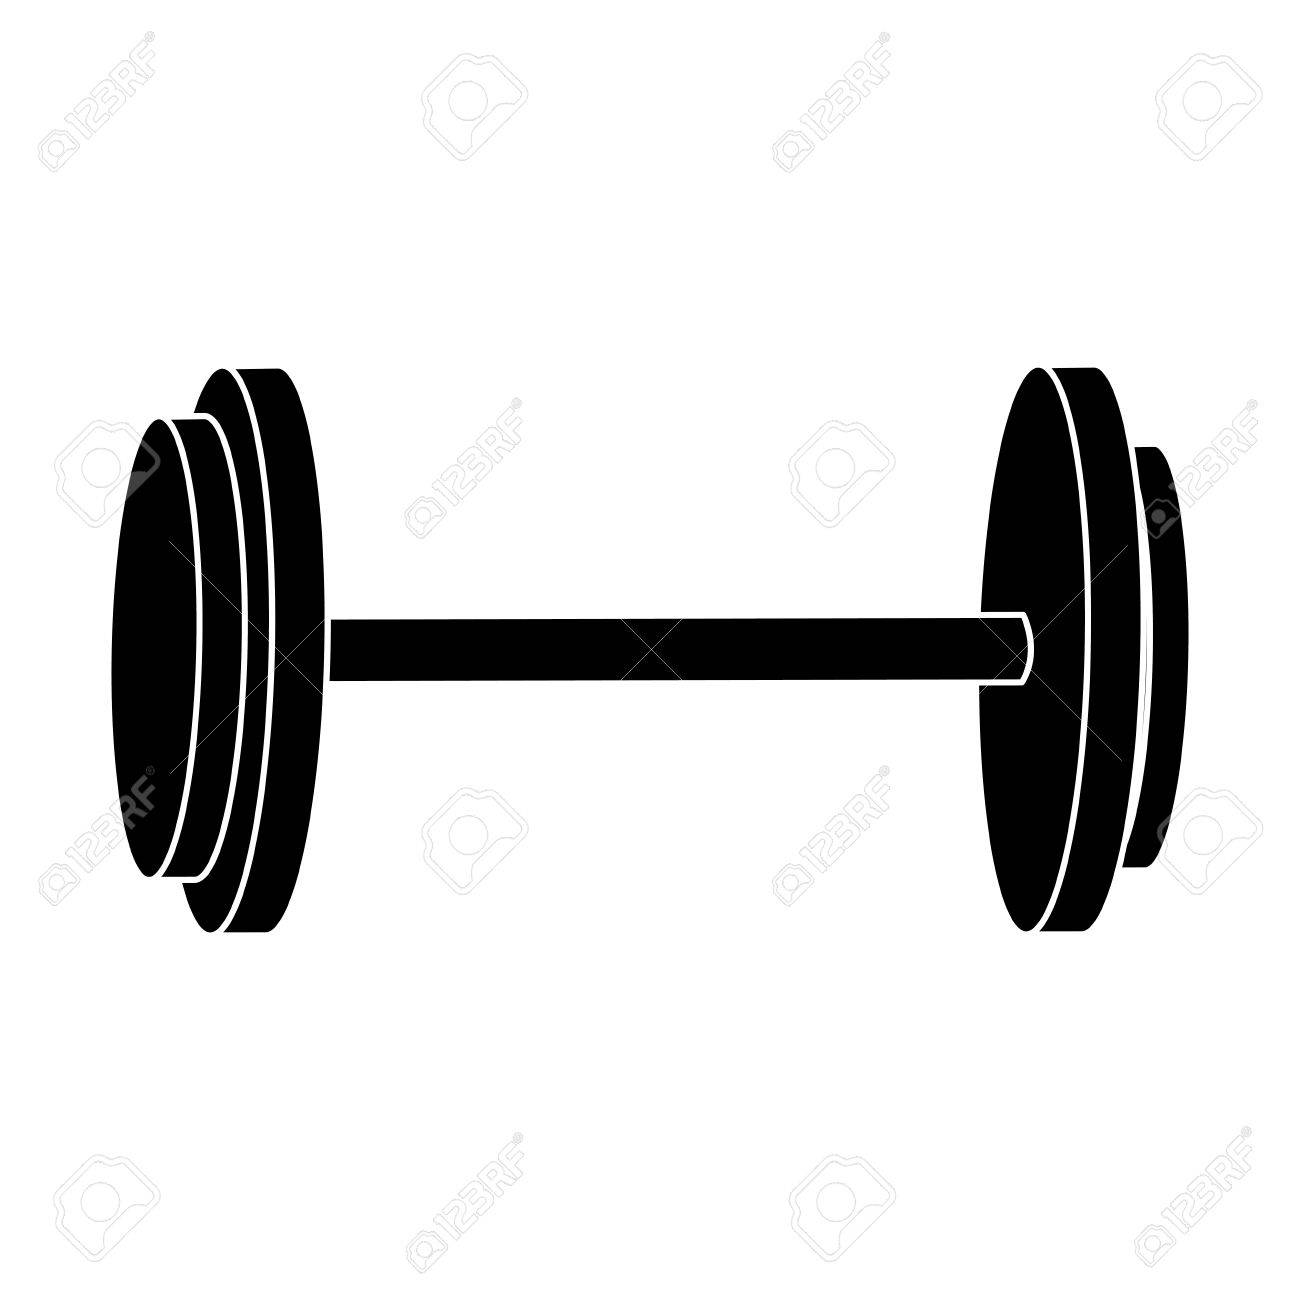 dumbbell weight gym equipment image silhouette vector illustration.